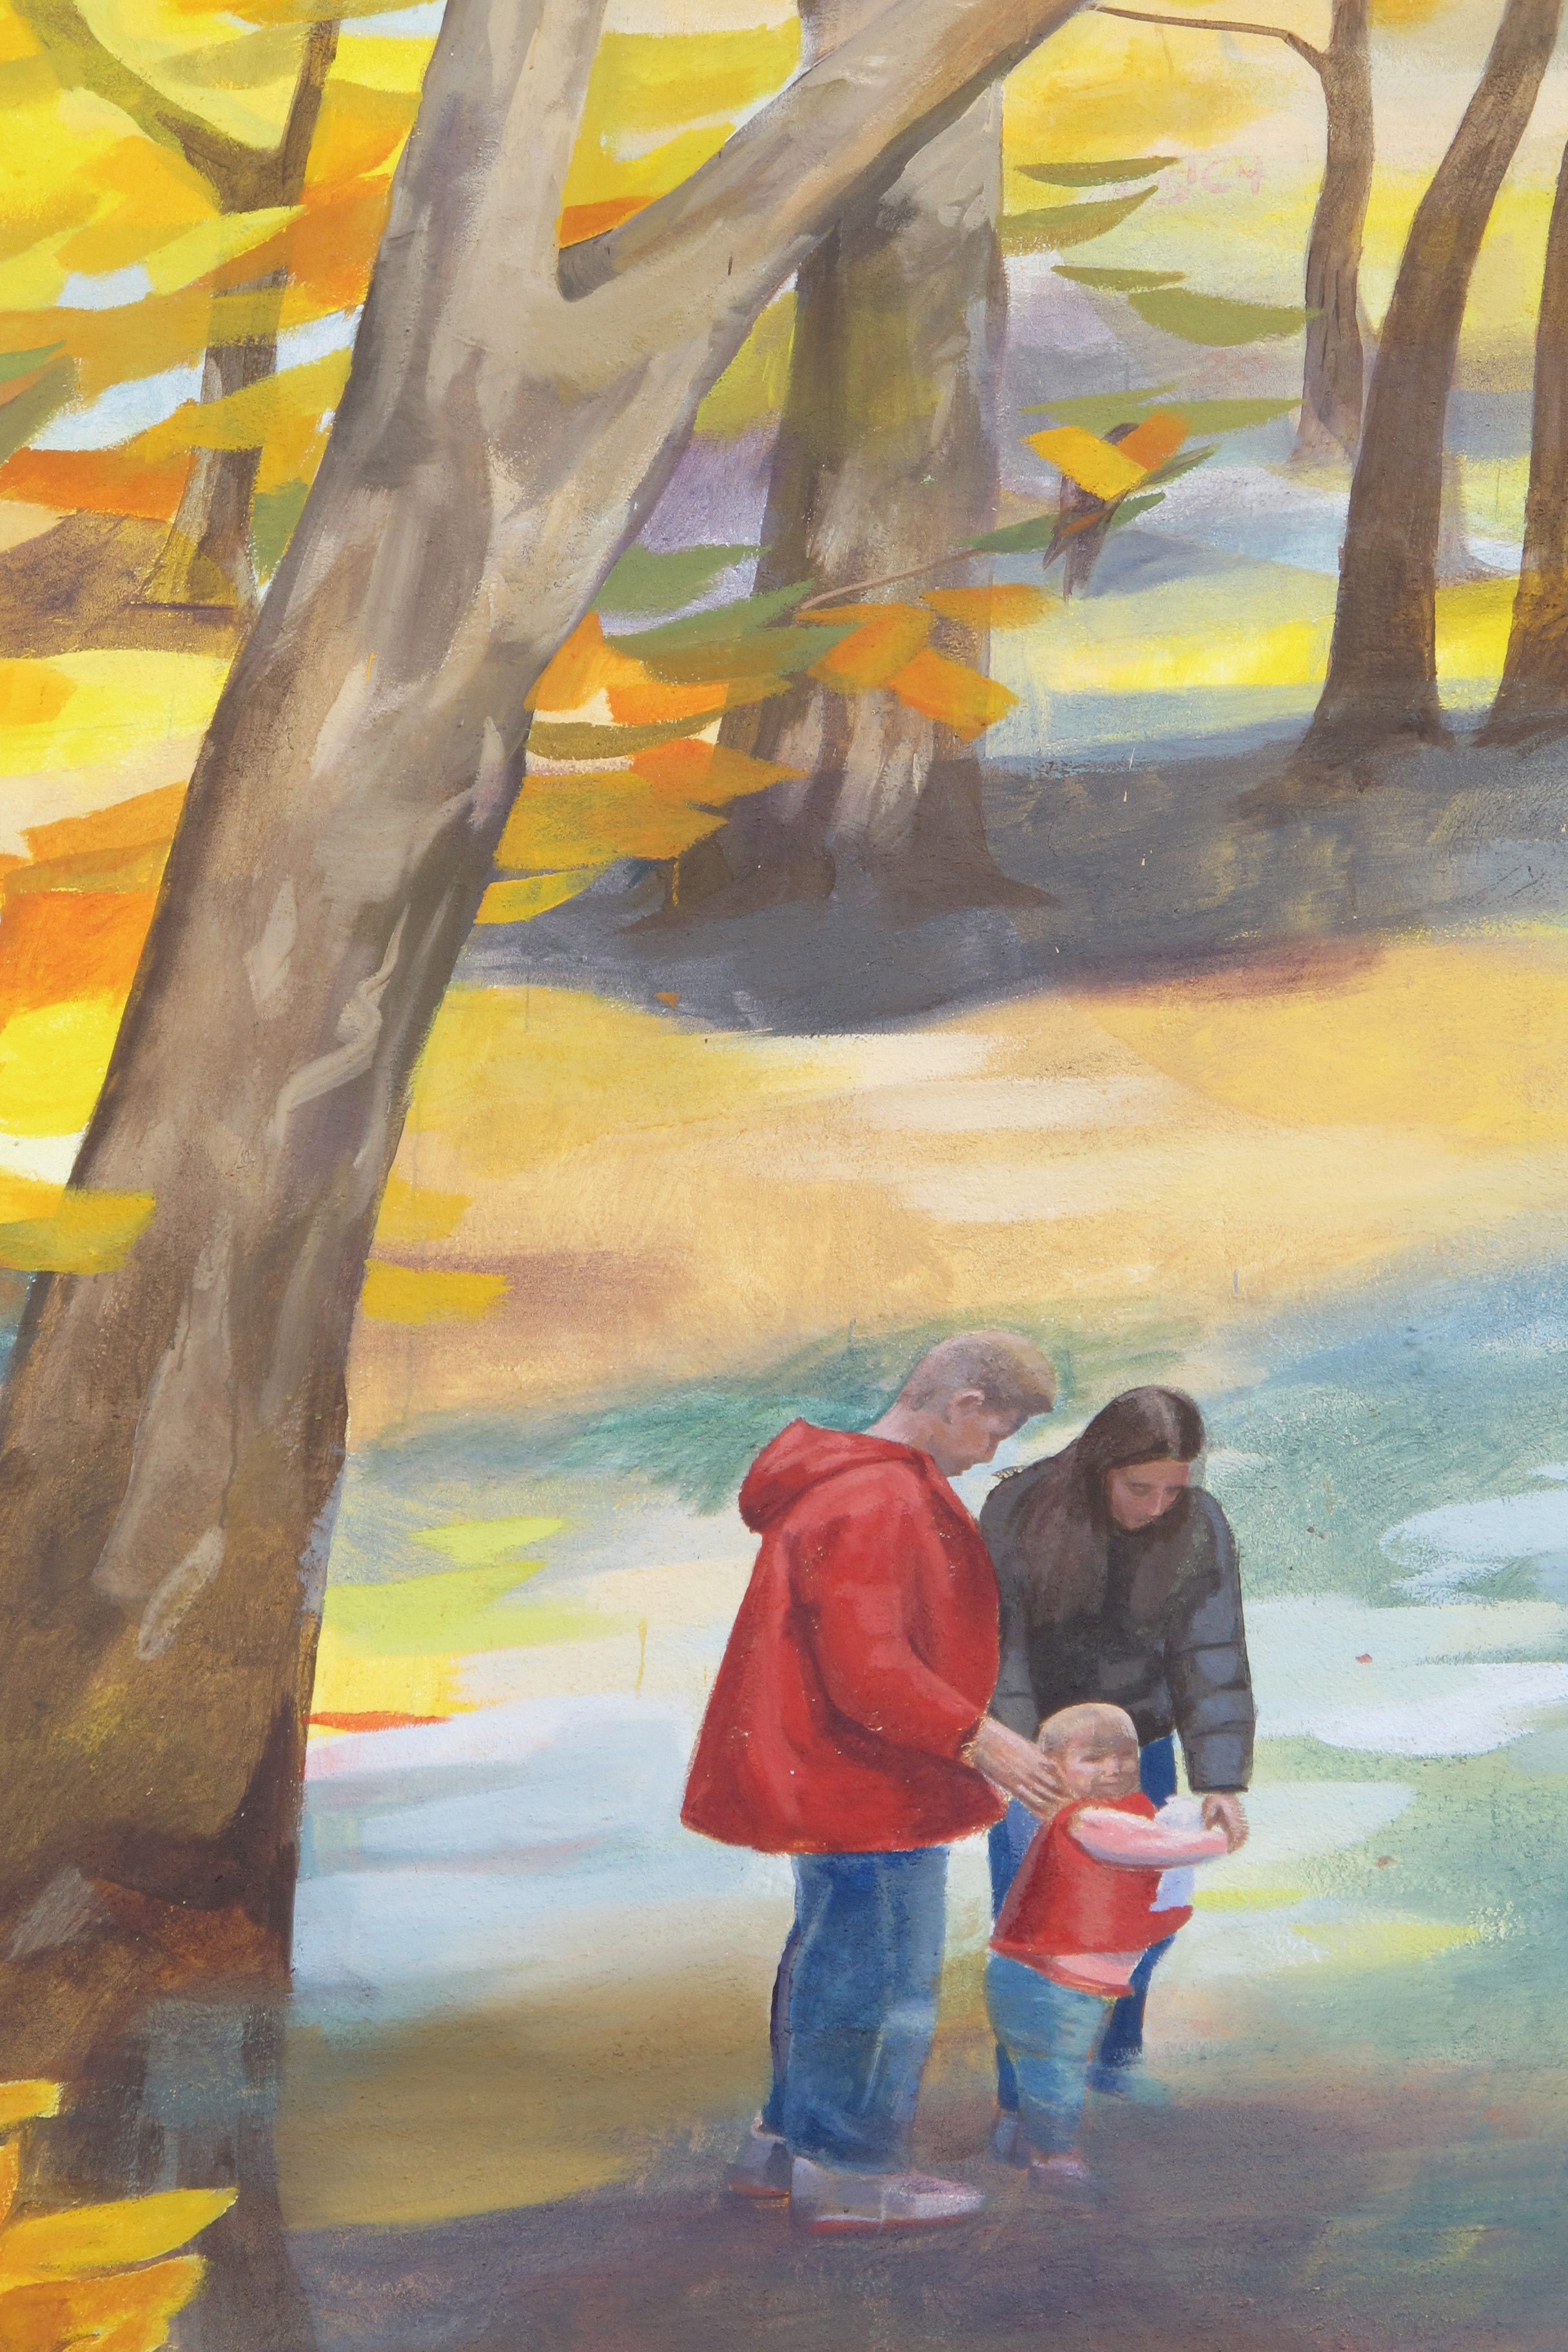 Autumn Revisited - Detail of children